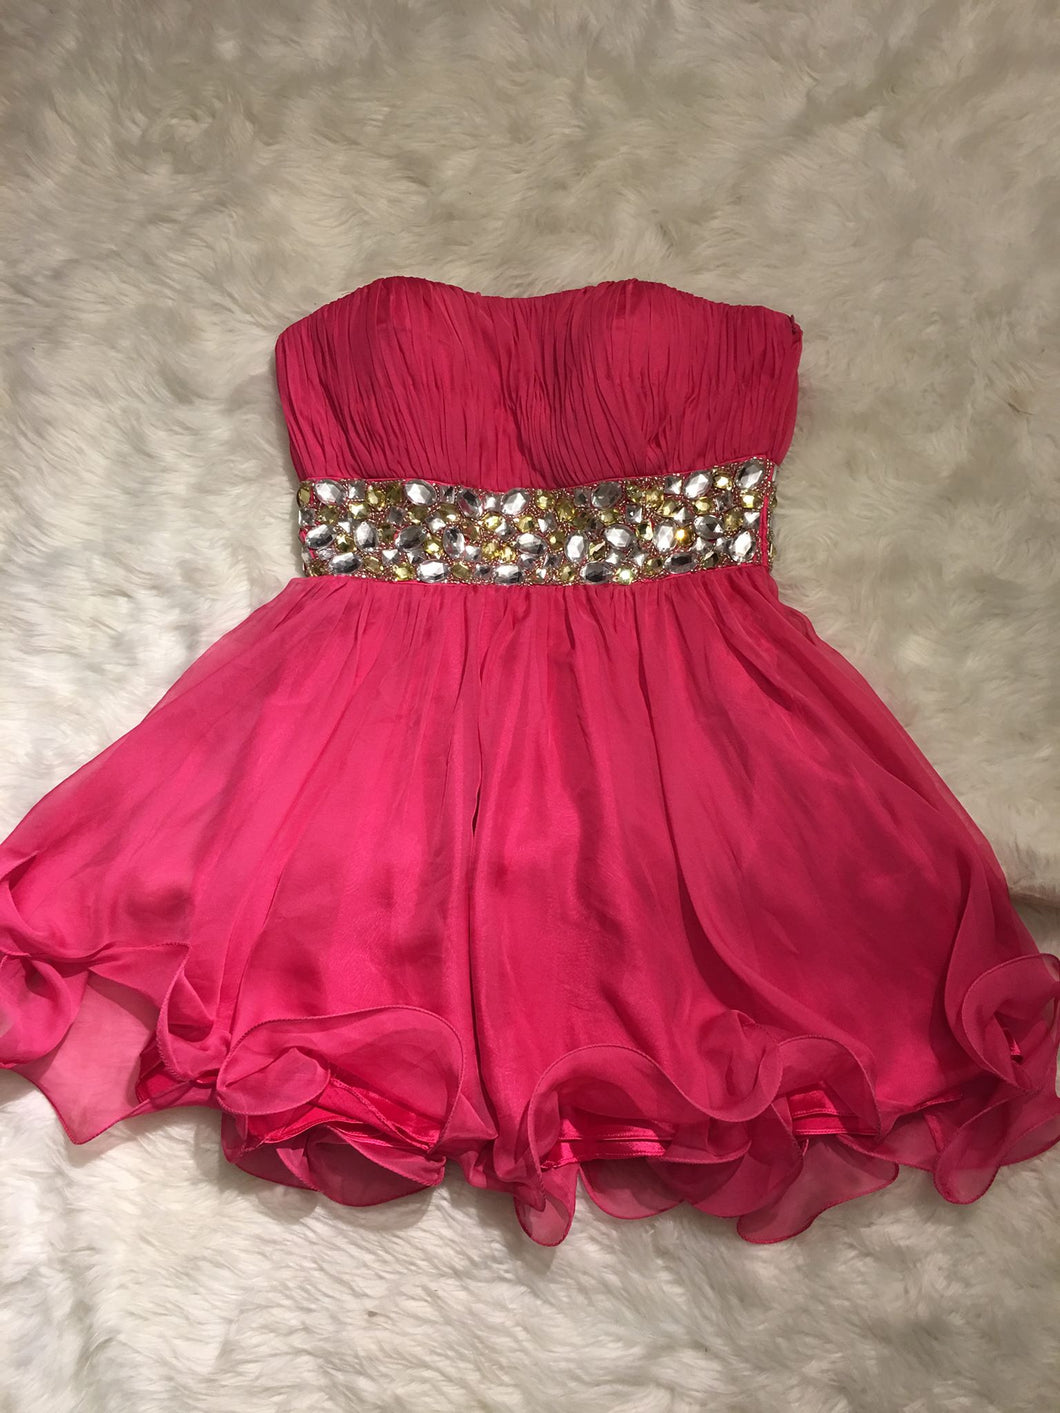 MD Consignment Strapless Embellished Sheer Bodice Short Fuchsia Prom Dress